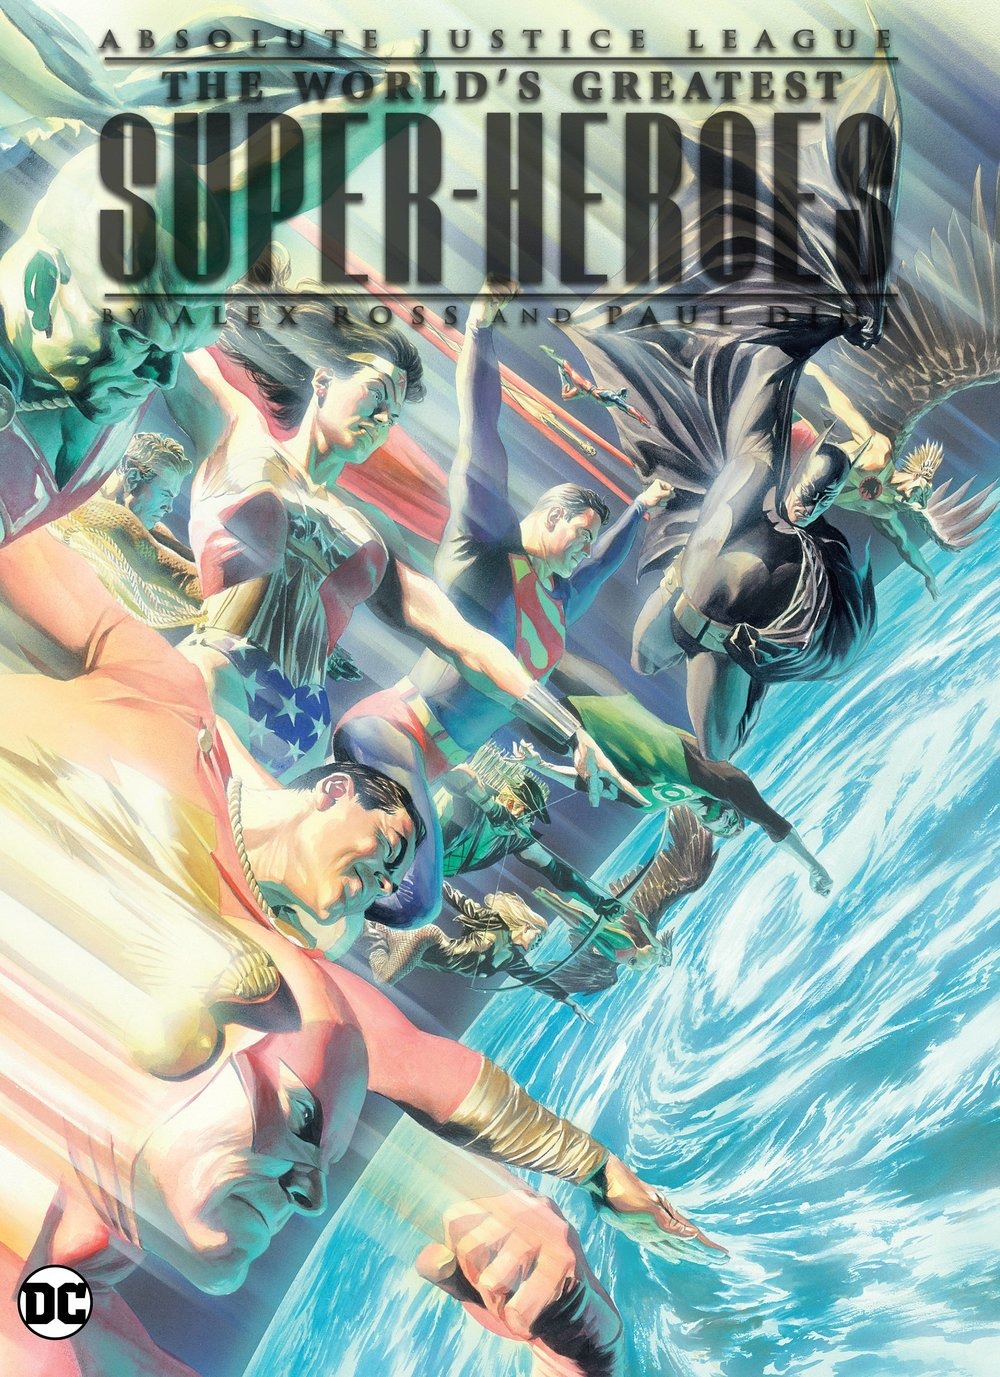 ABS JUSTICE LEAGUE WORLDS GREATEST SUPERHEROES HC.jpg